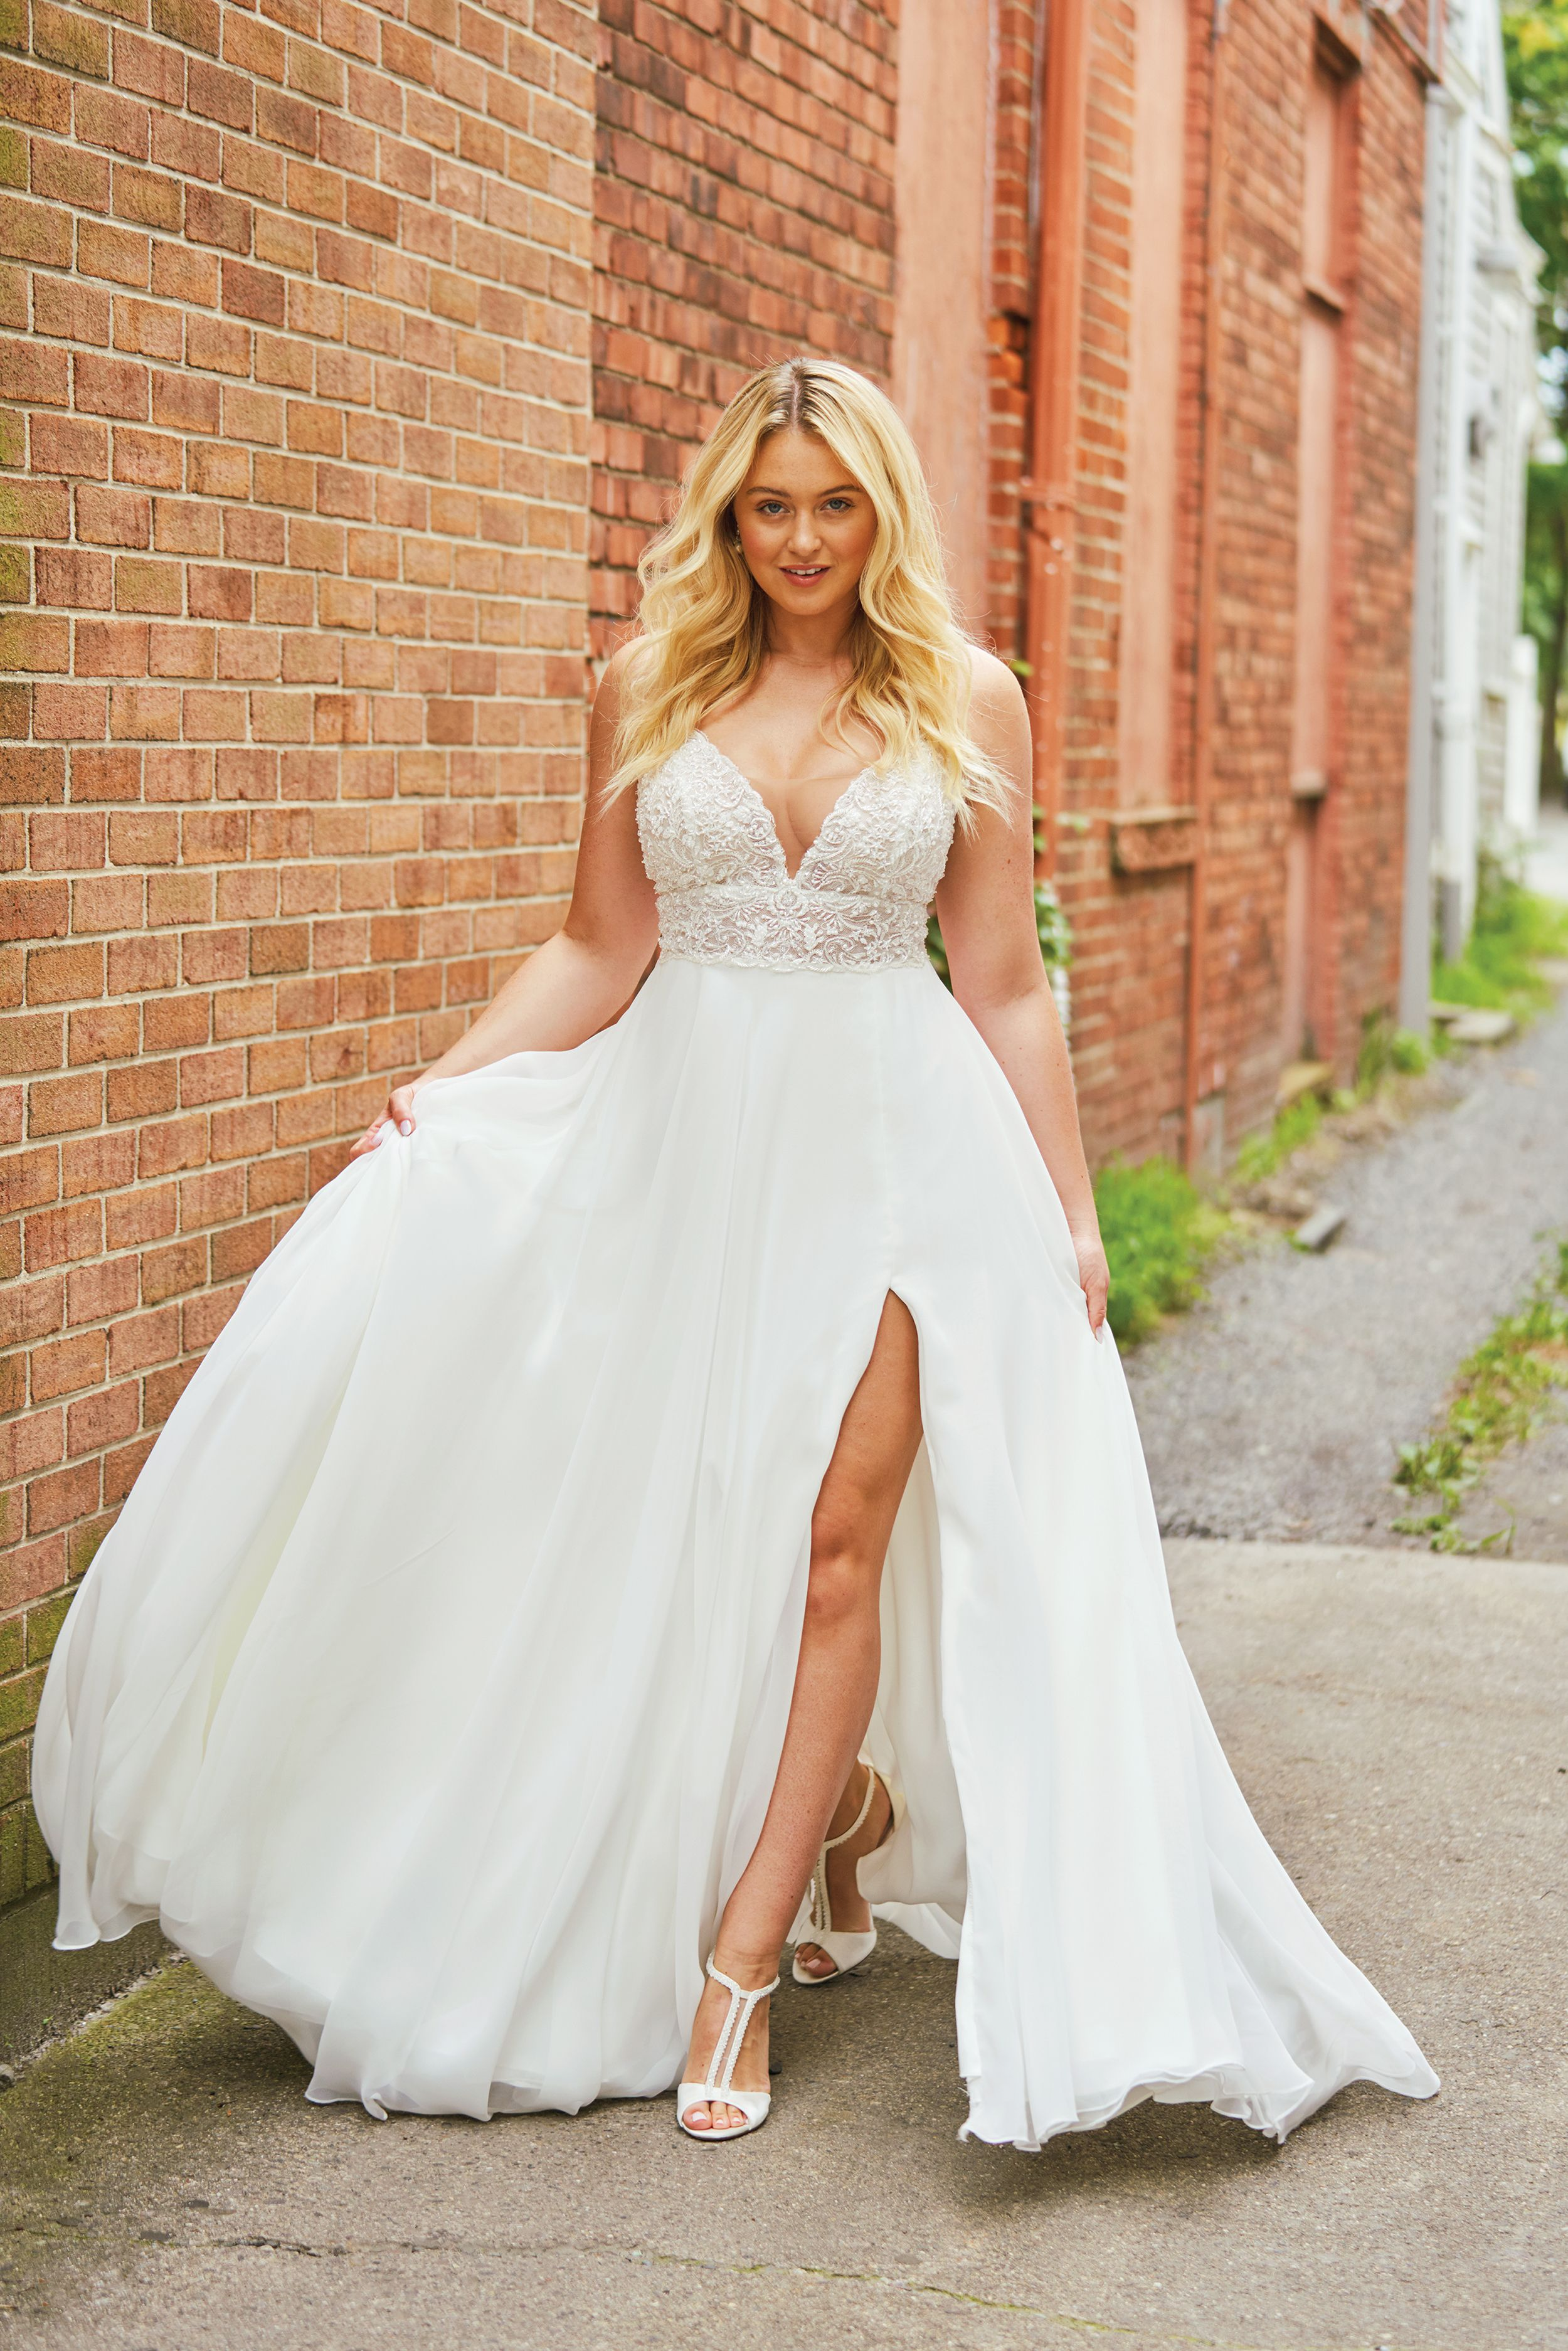 Plus Size Wedding Dresses for the Curvy Bride in 2020